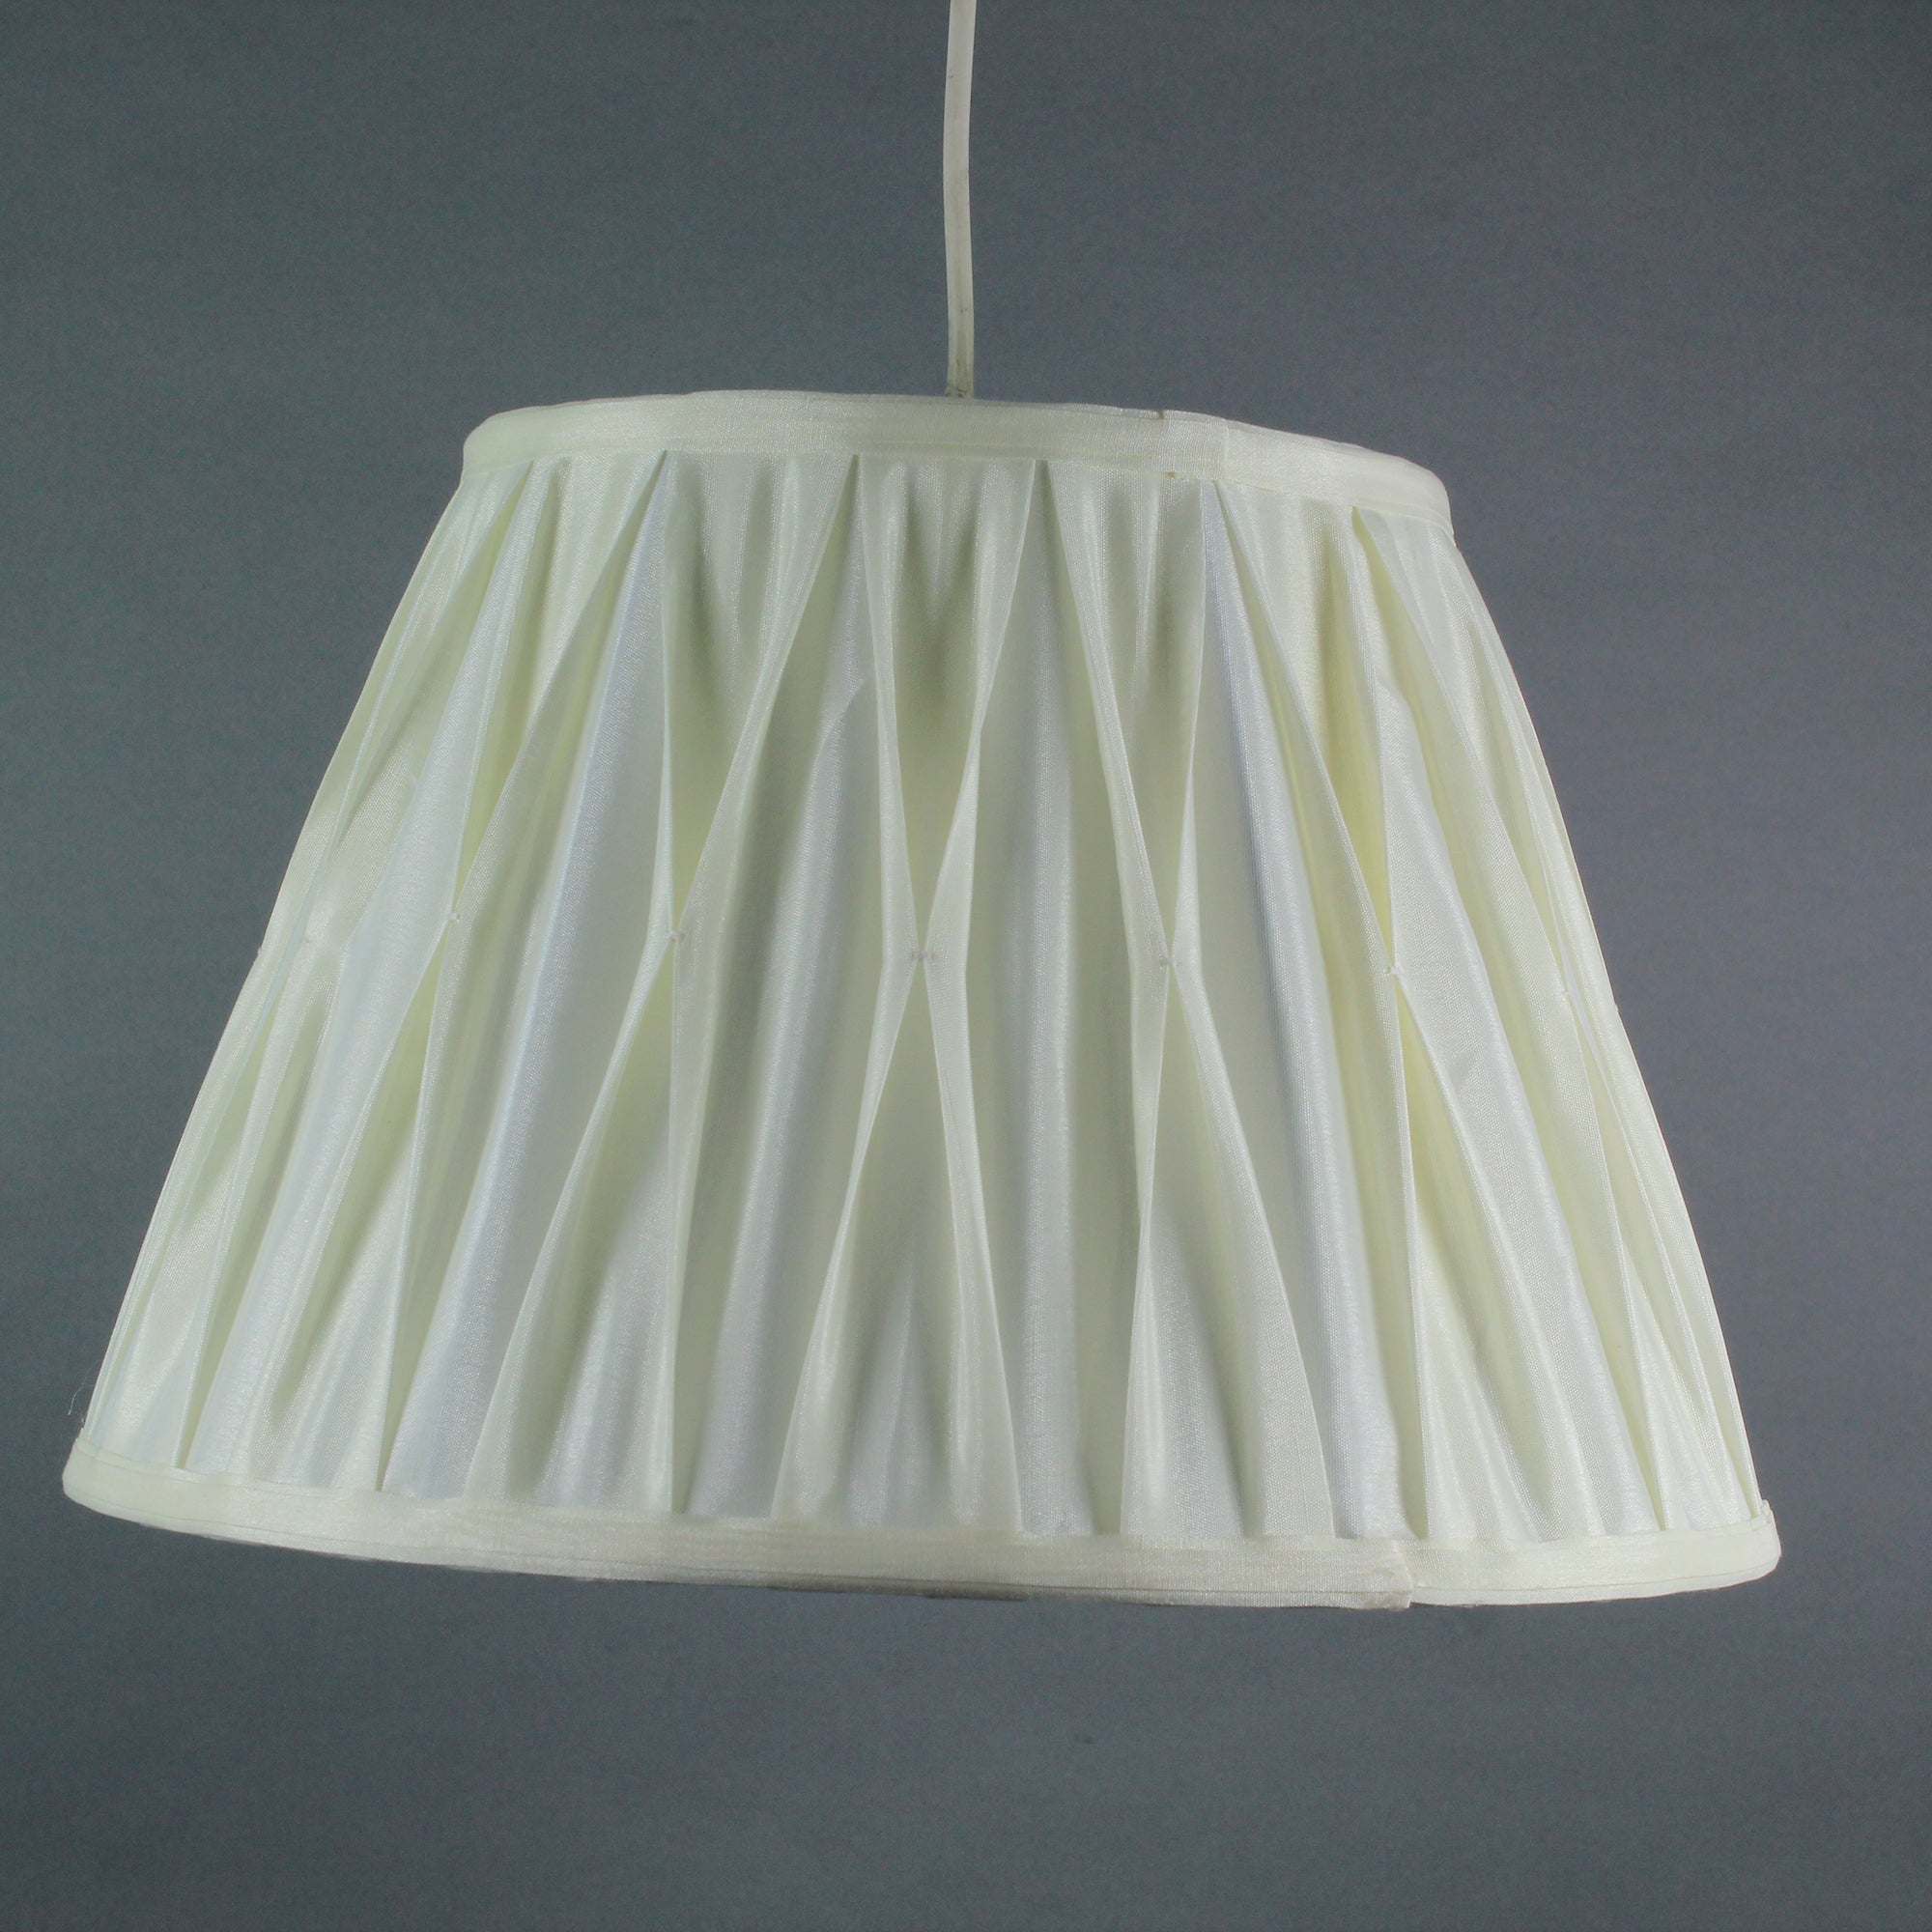 Dorma Abbey Pinch Pleat Pendant Shade